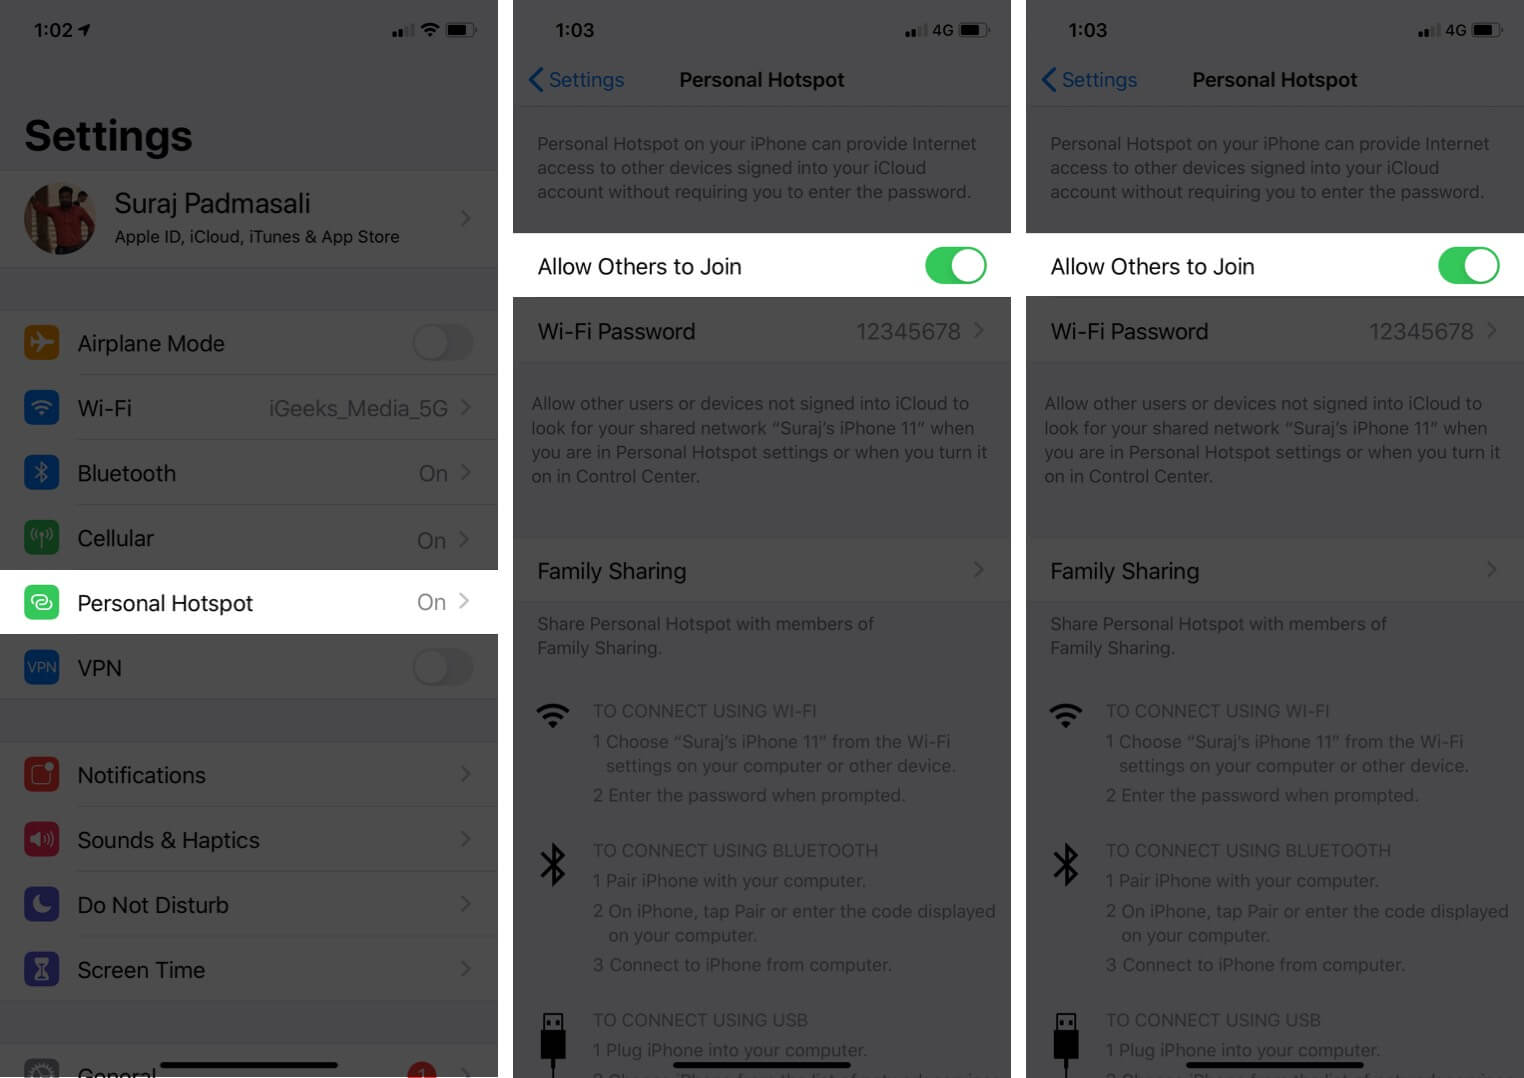 Turn Off Personal HotSpot on iPhone